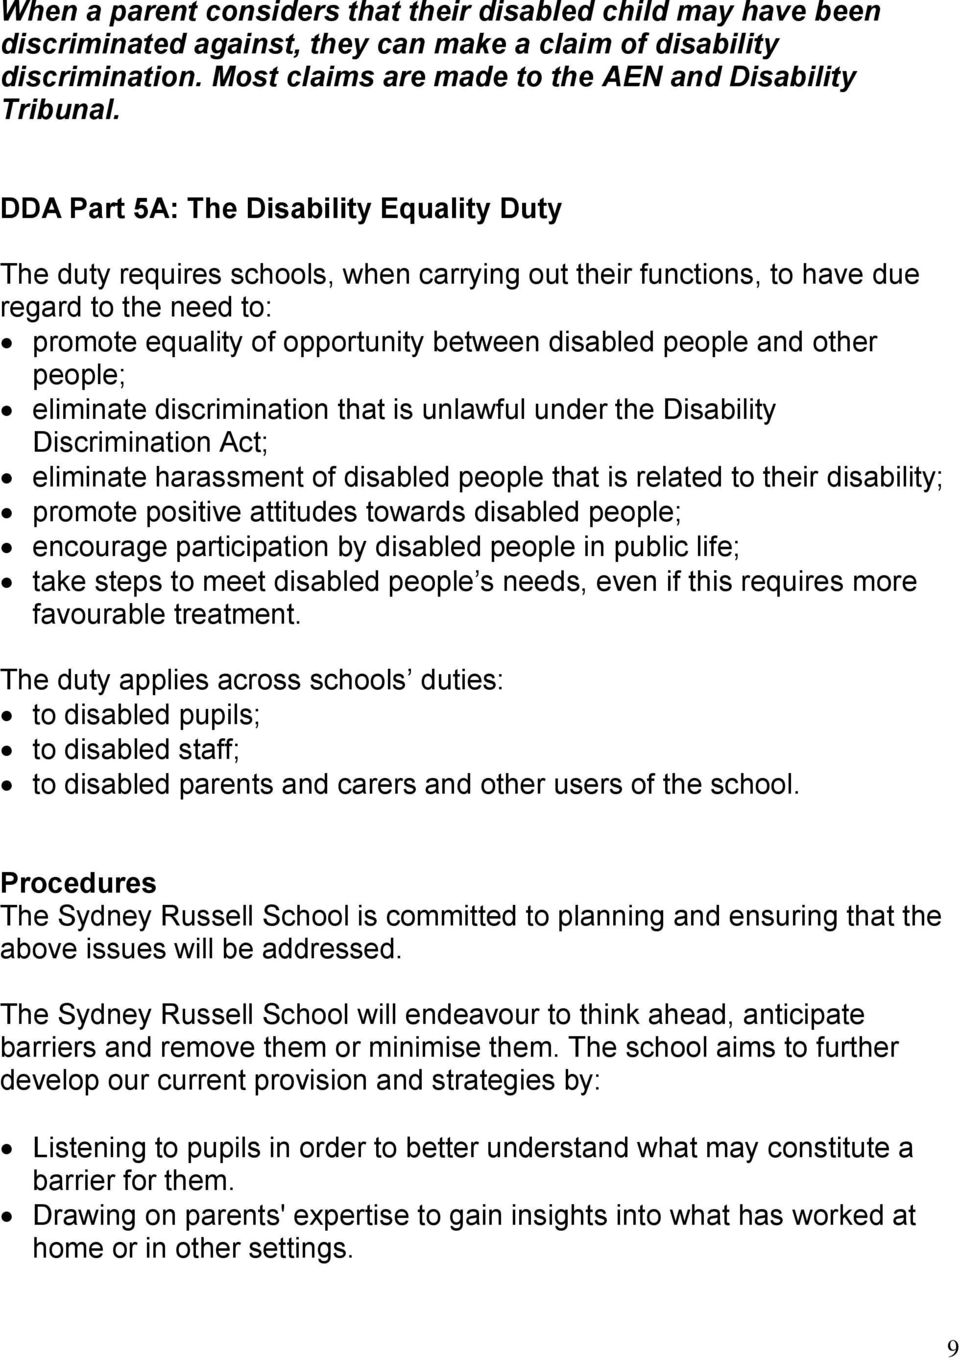 other people; eliminate discrimination that is unlawful under the Disability Discrimination Act; eliminate harassment of disabled people that is related to their disability; promote positive